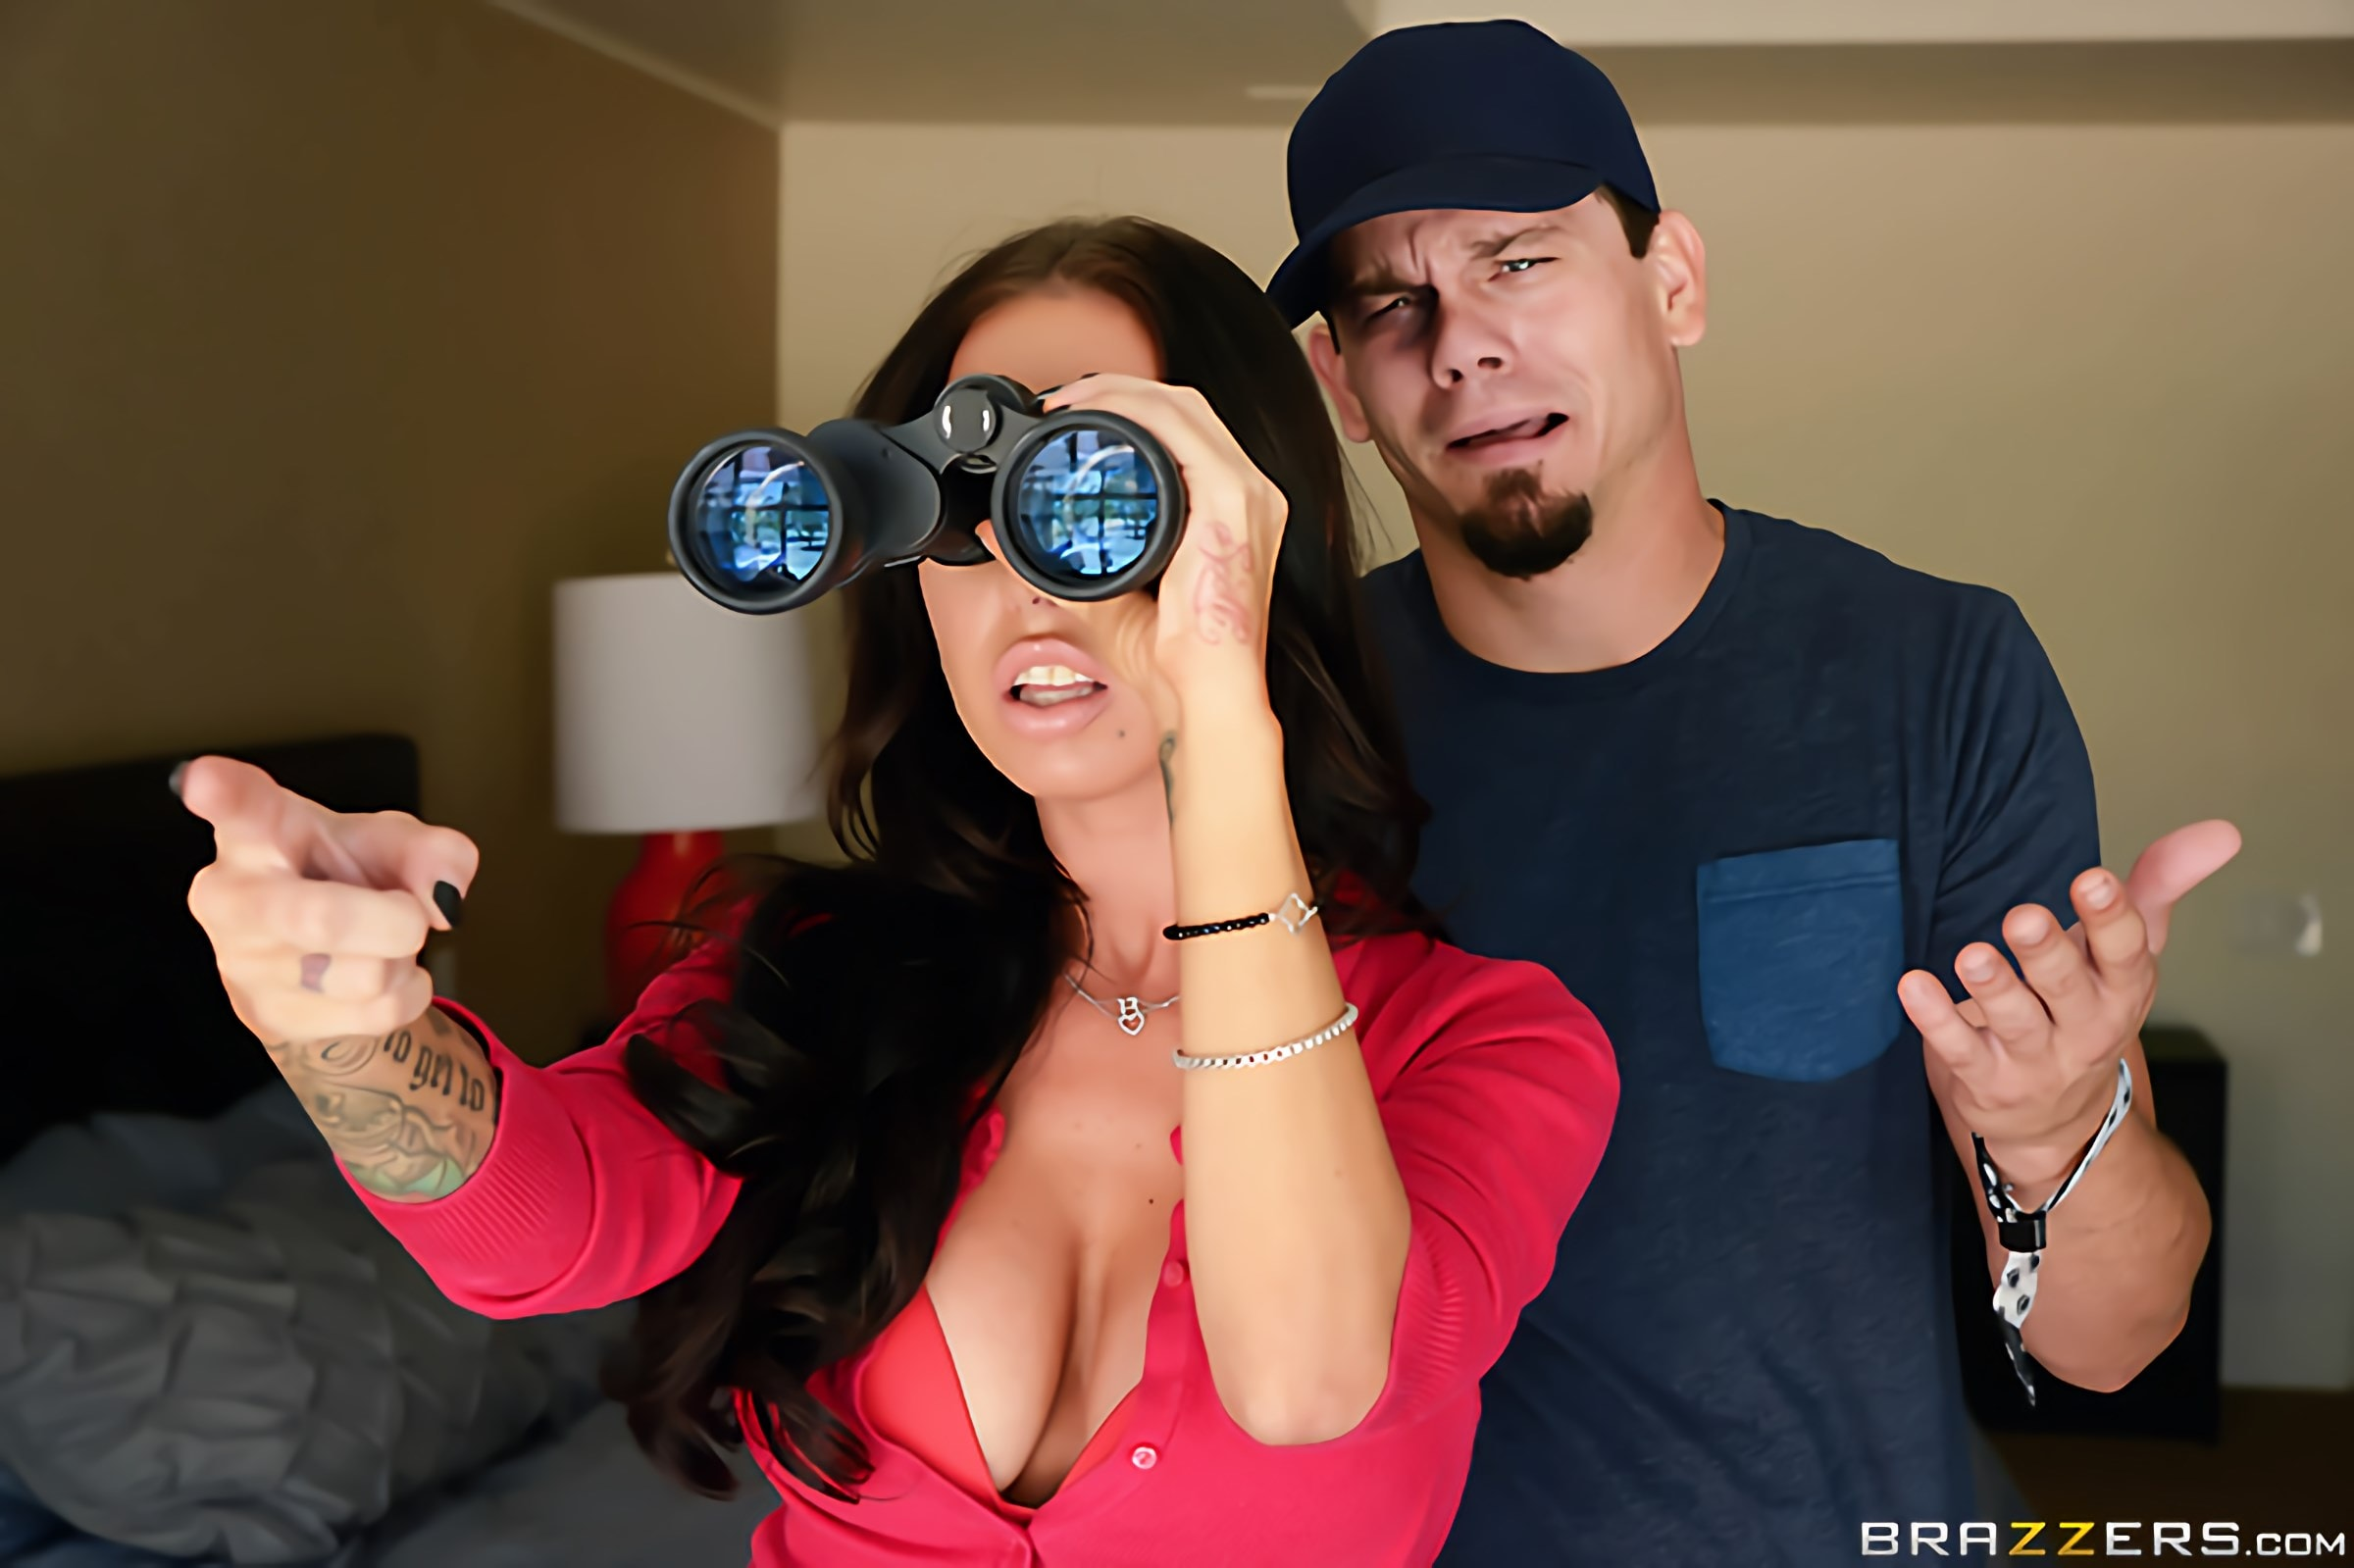 Brazzers 'Why Dont You Pick On Someone Your Own Size' starring Brandy Aniston (Photo 5)